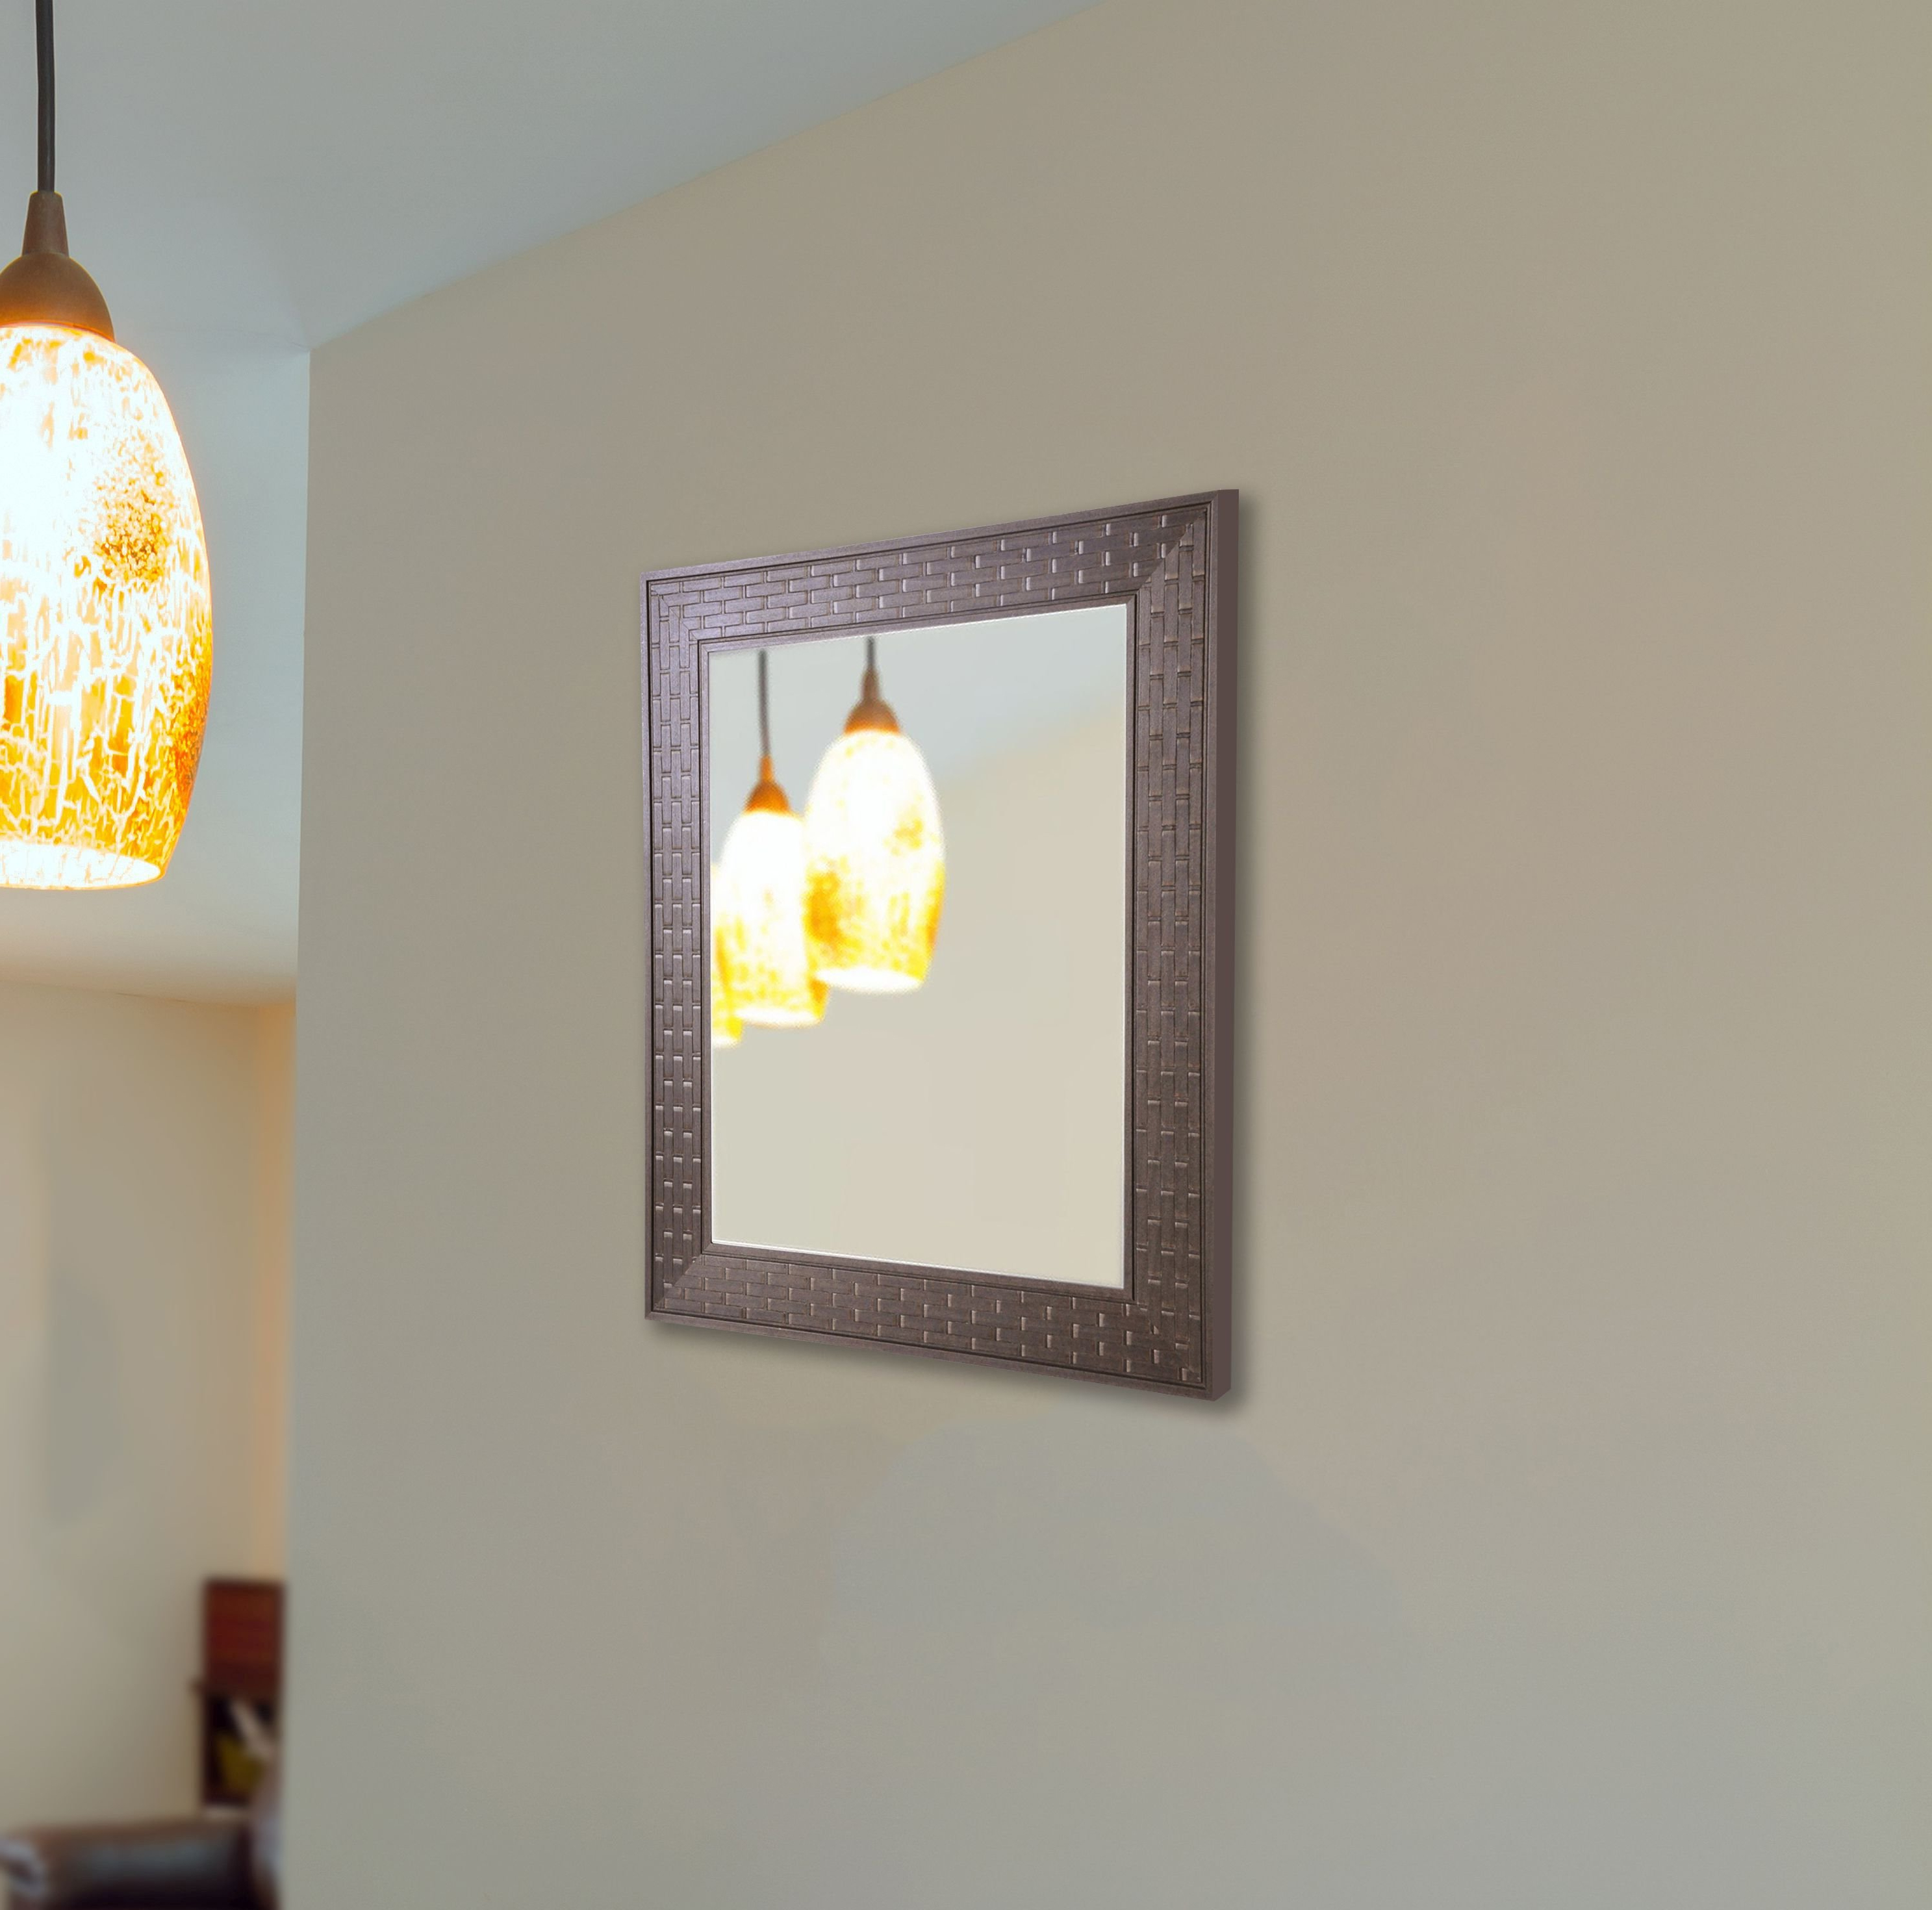 Decorative Contemporary Wall Mirrors Pertaining To Well Known Godfrey Brick Brown Modern & Contemporary Wall Mirror (View 15 of 20)